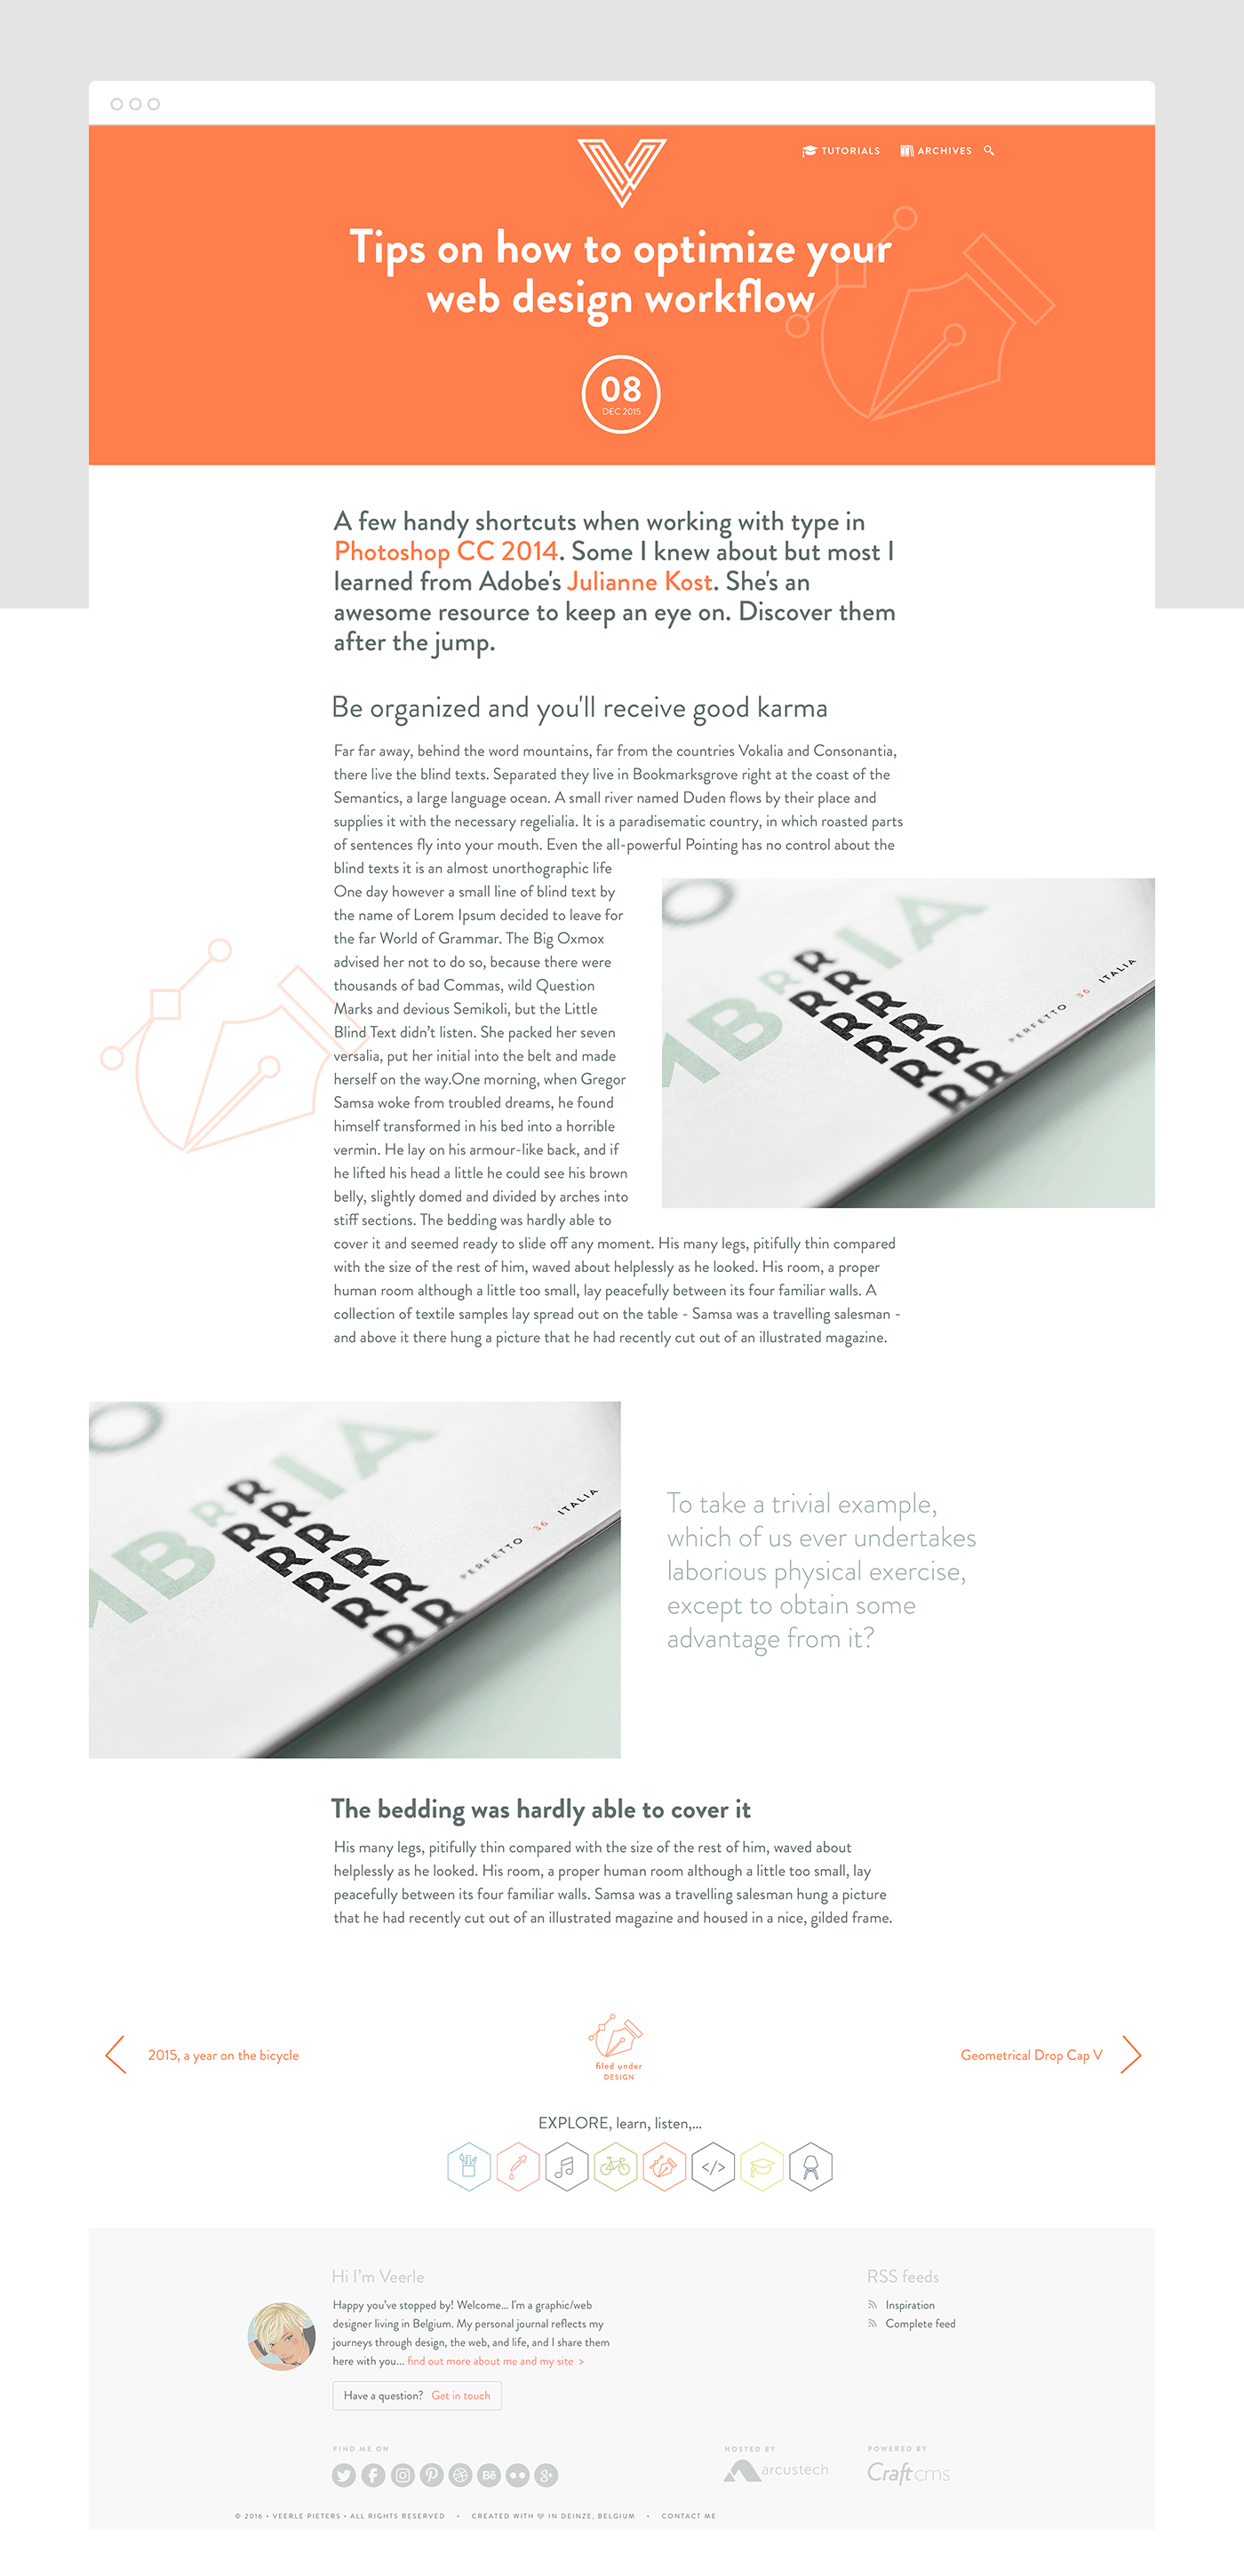 Design of the blog article page in one of the layouts